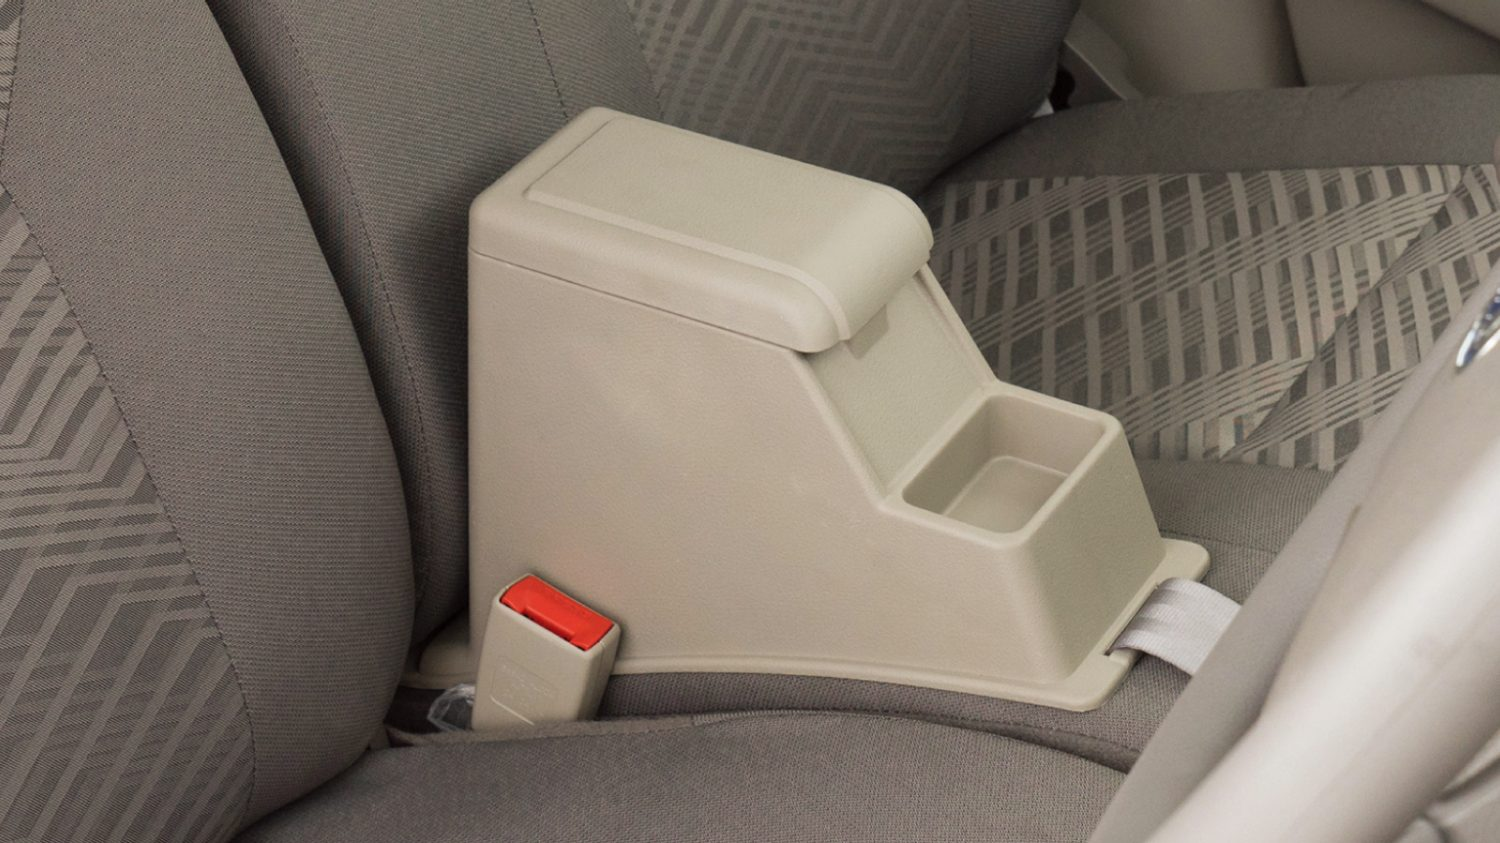 Arm Rest with Consol Box